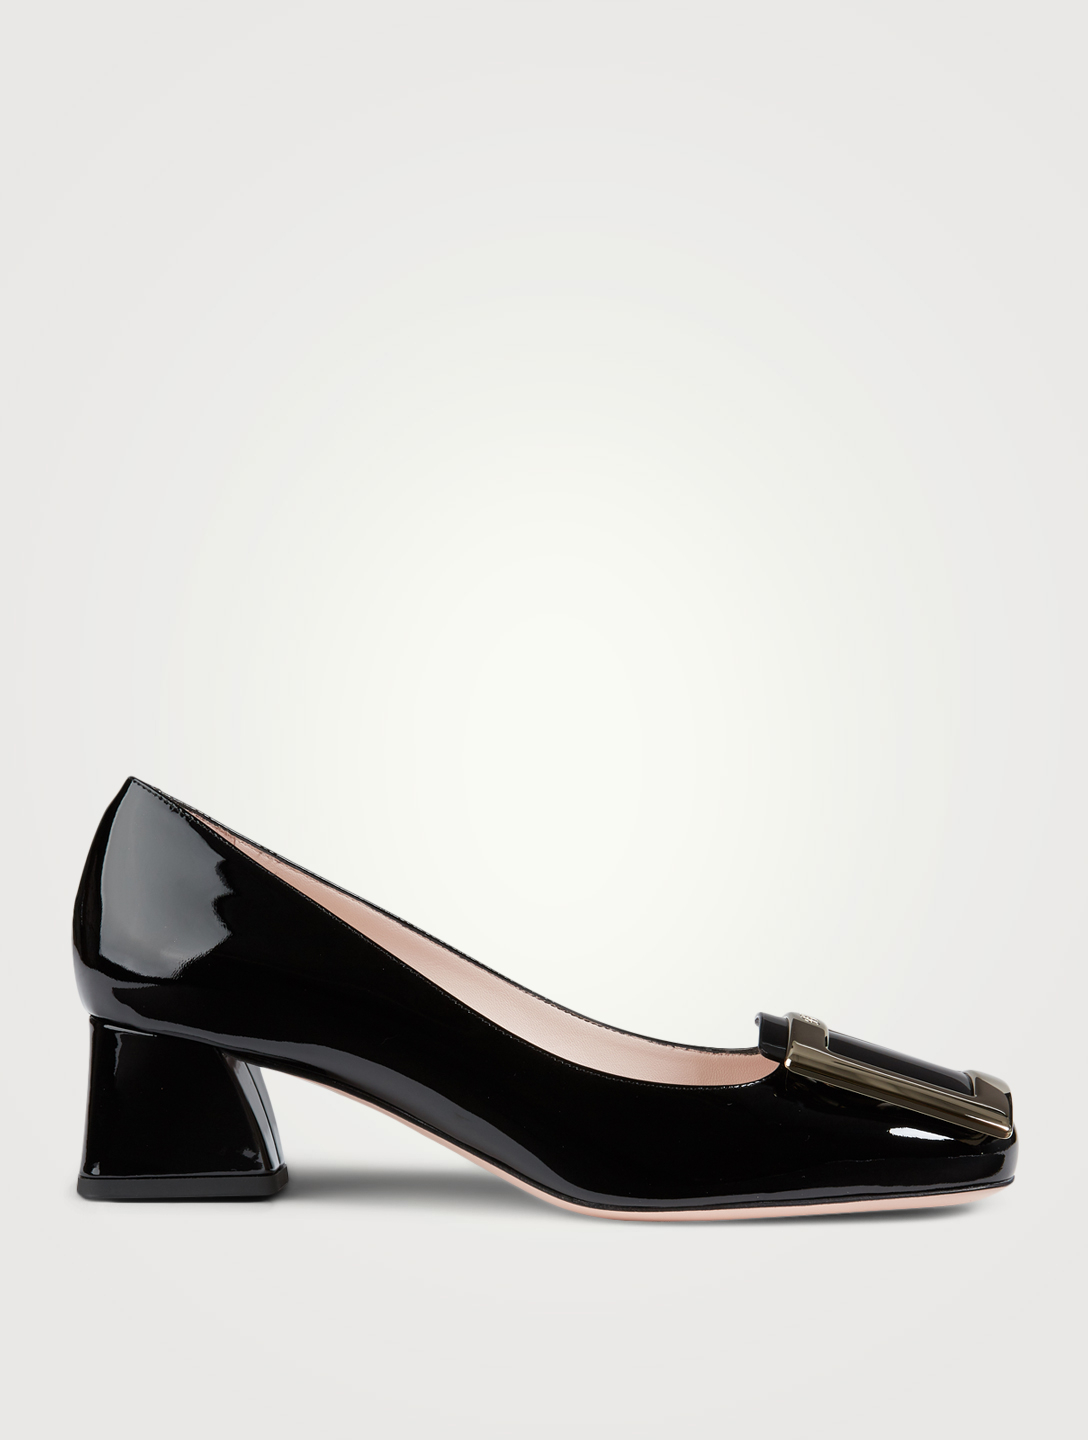 ROGER VIVIER Très Vivier Leather Pumps Women's Black